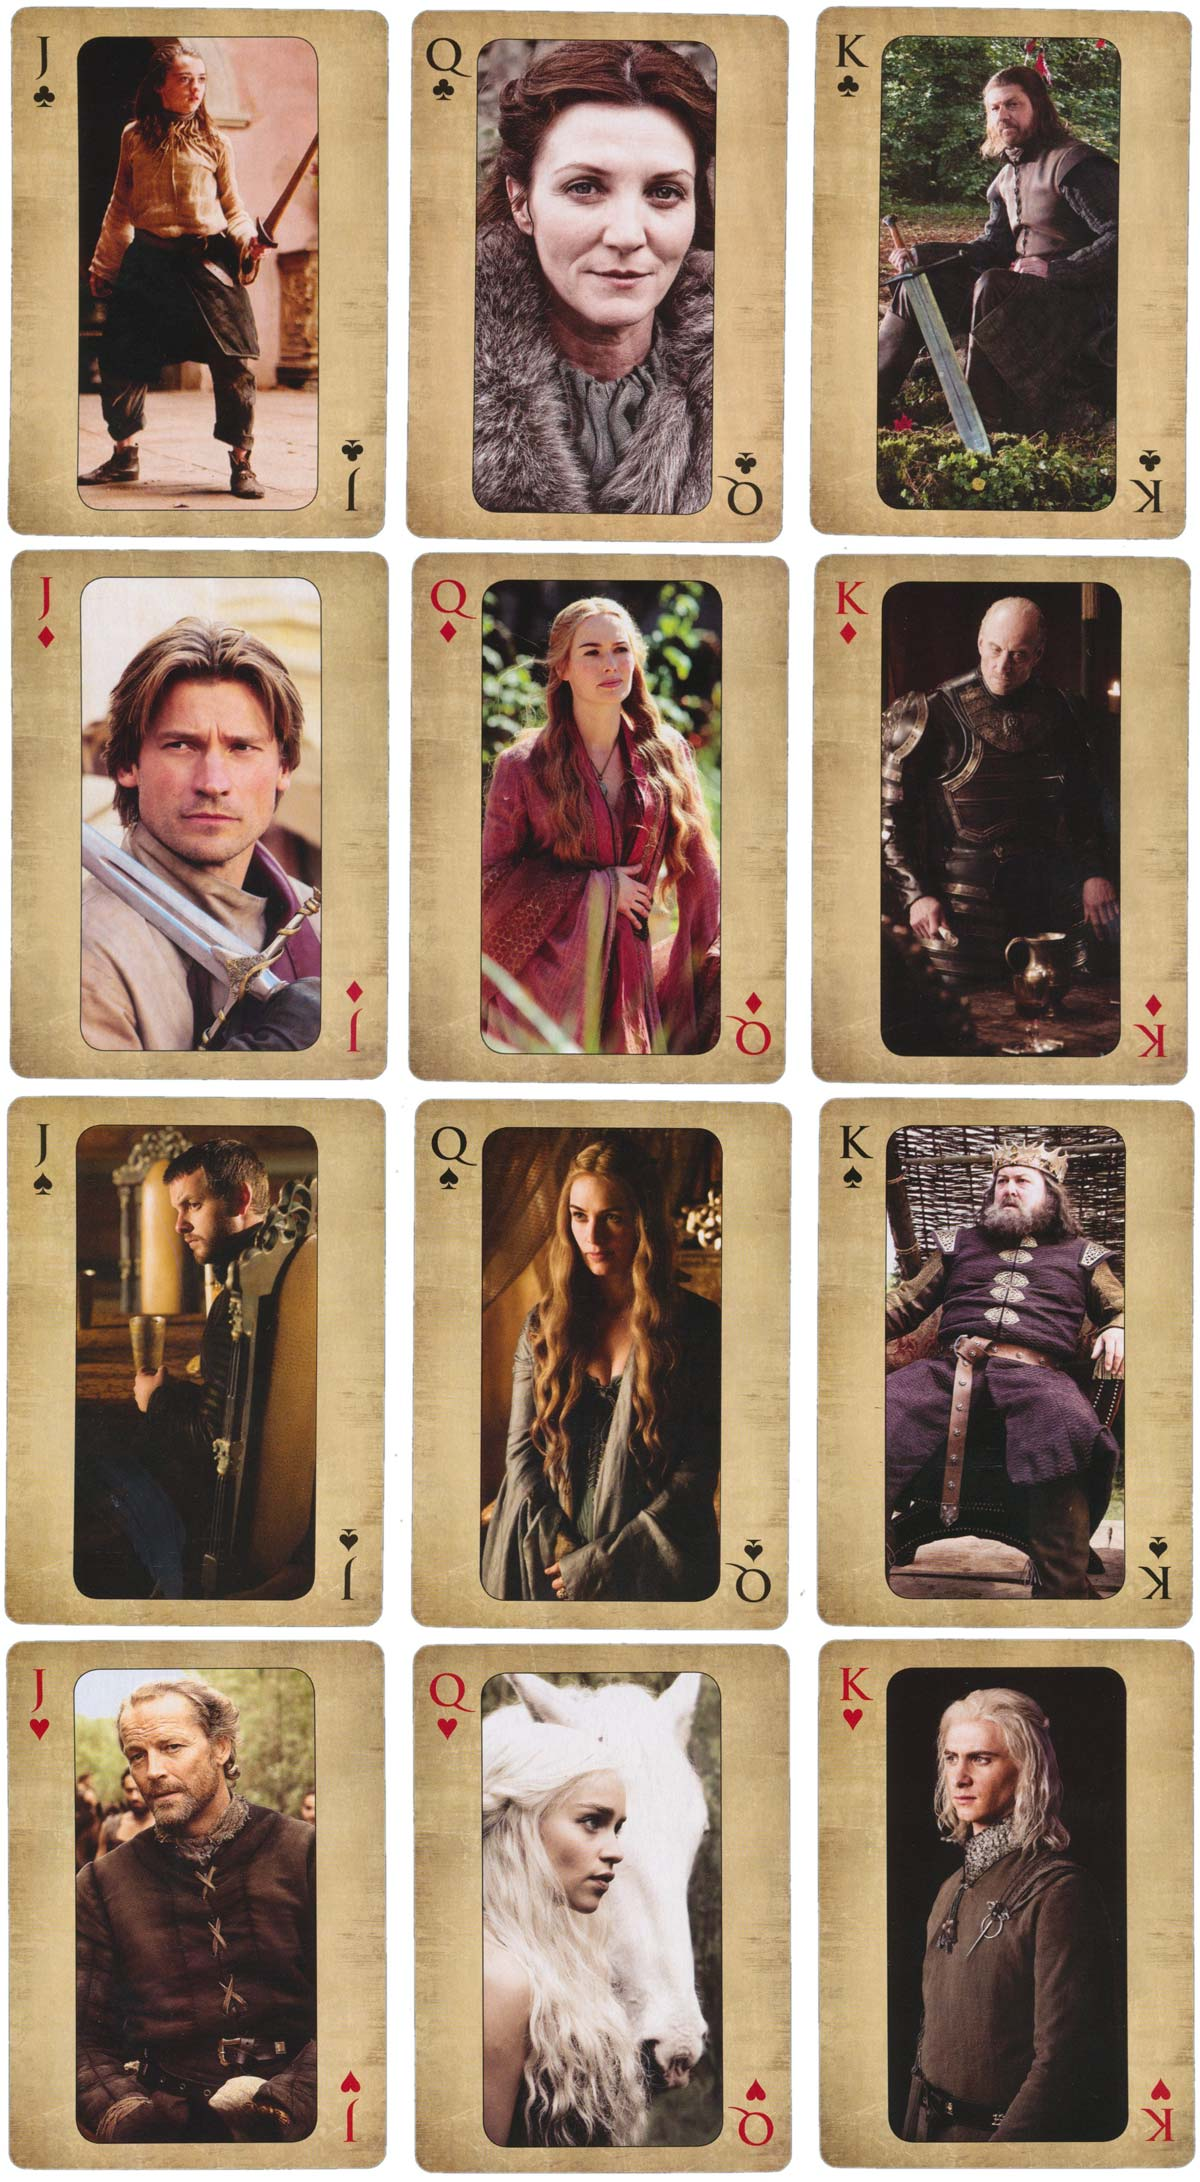 Game of Thrones Playing Cards, 2016 © Home Box Office, Inc.